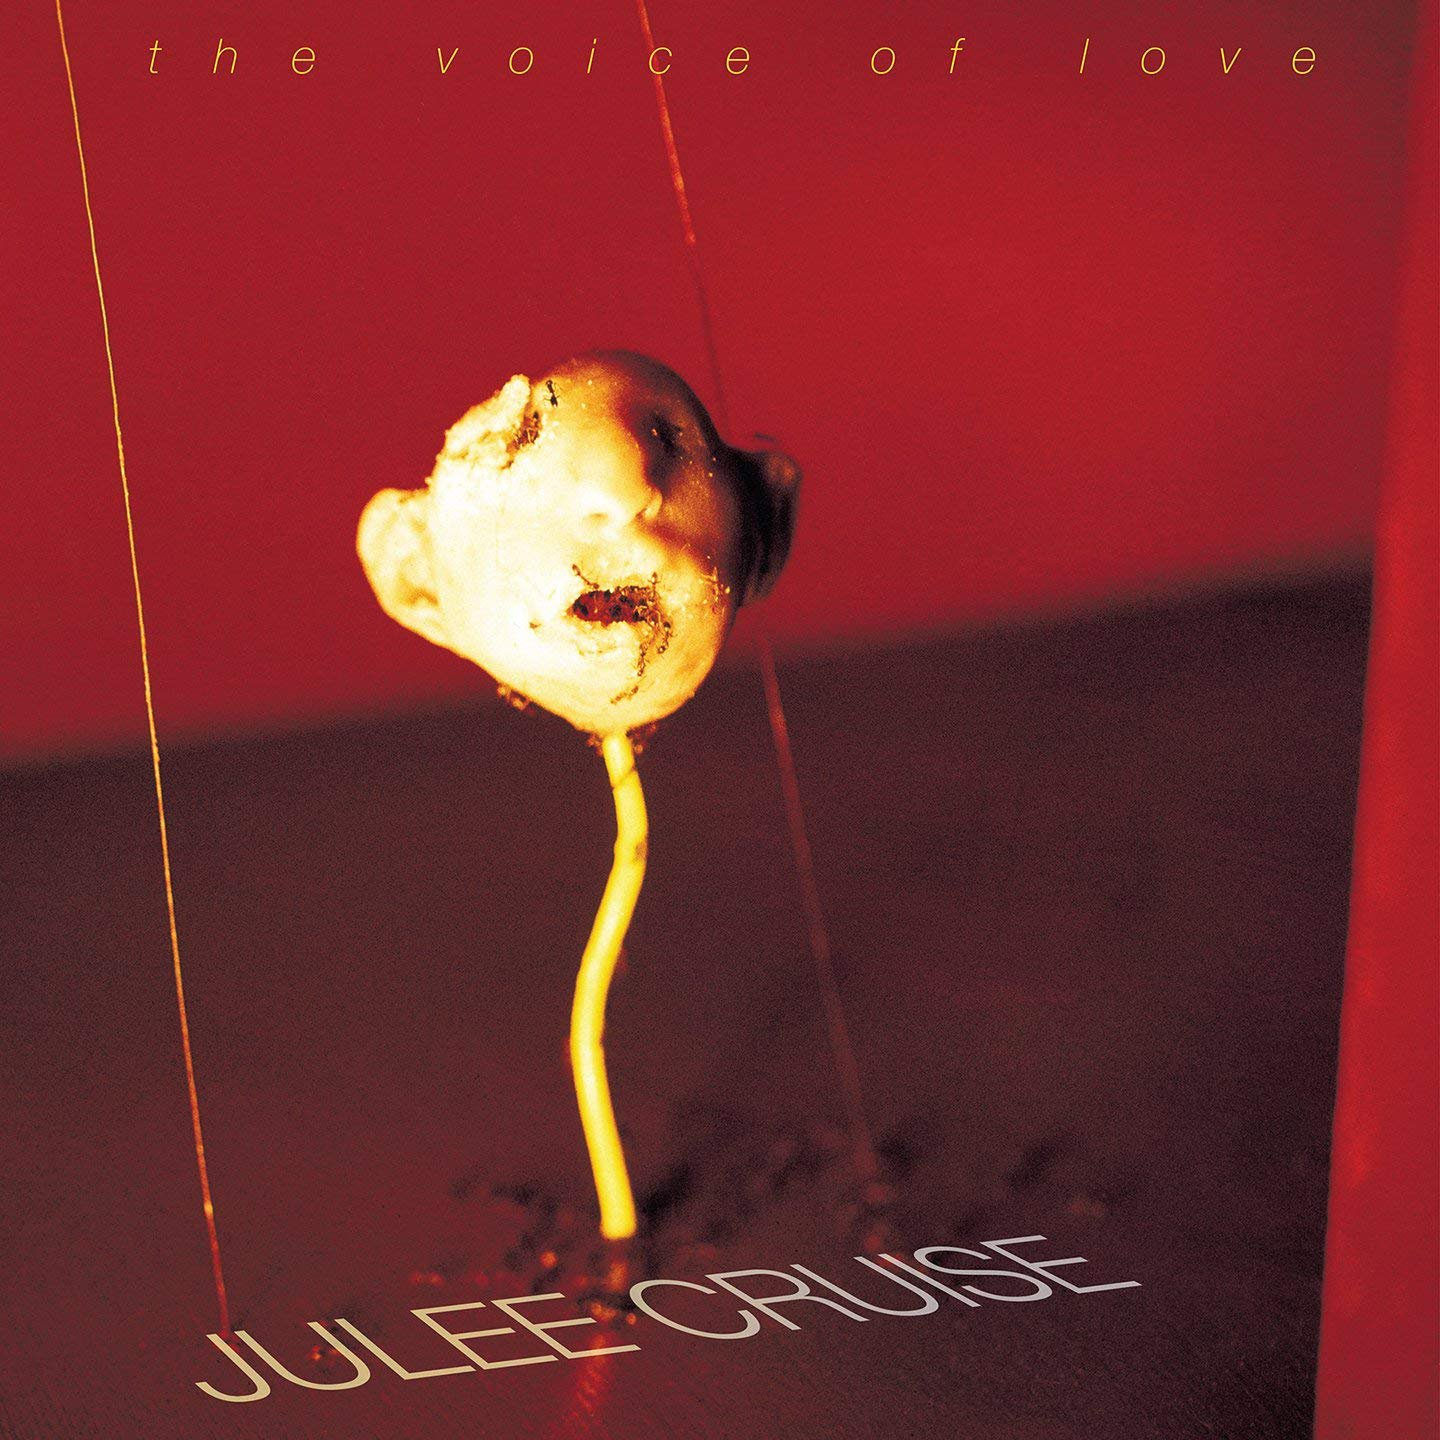 Vinilo : Julee Cruise - Voice Of Love (2PC)